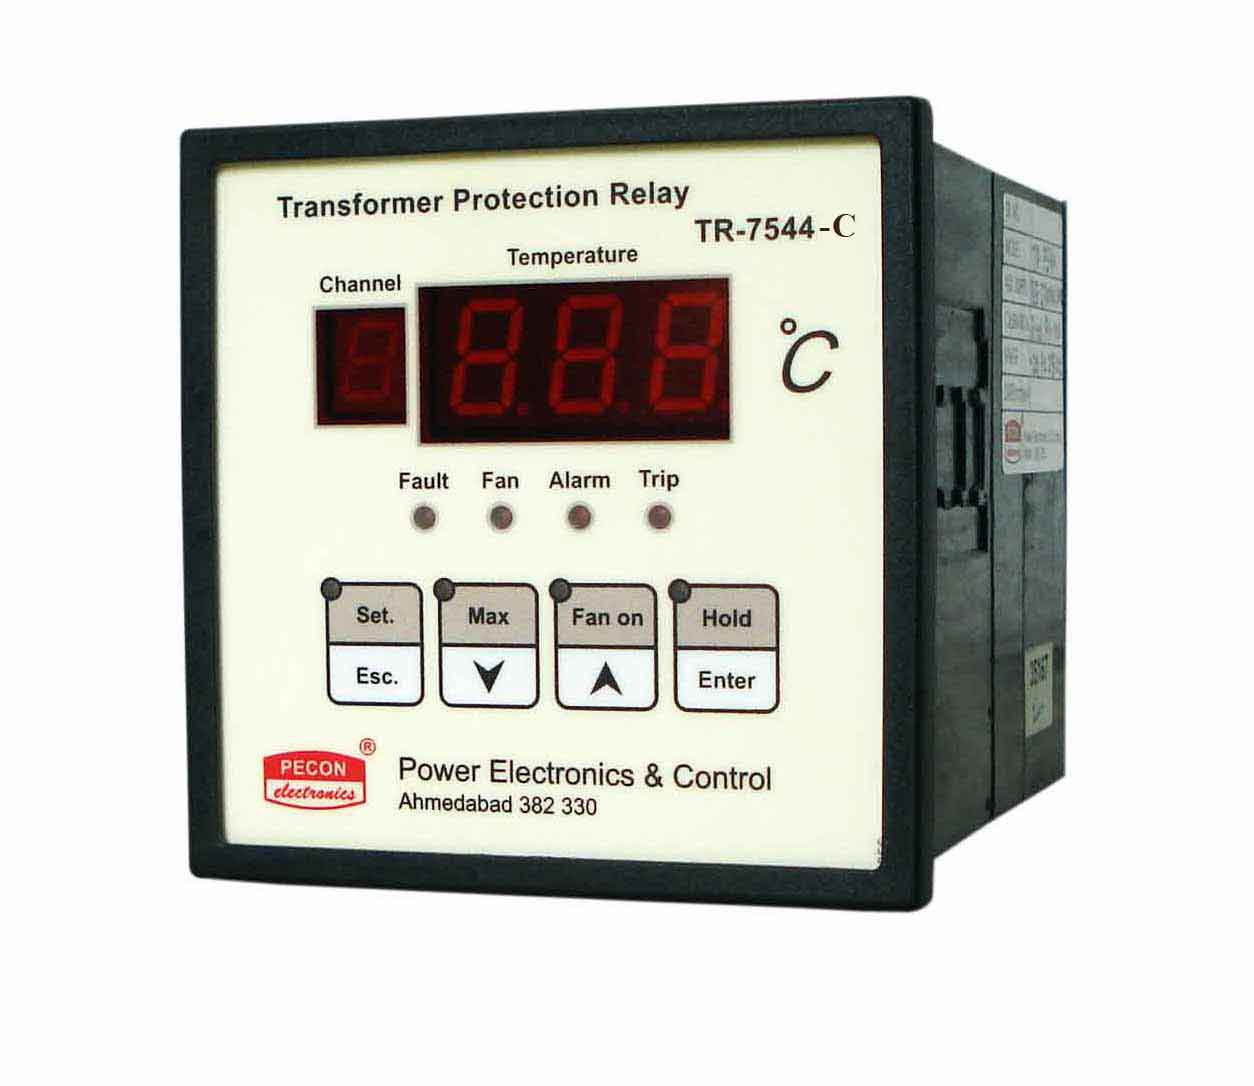 TR 7544 C four channel temperature scanner with RS485 remote output Transformer Protection Relay